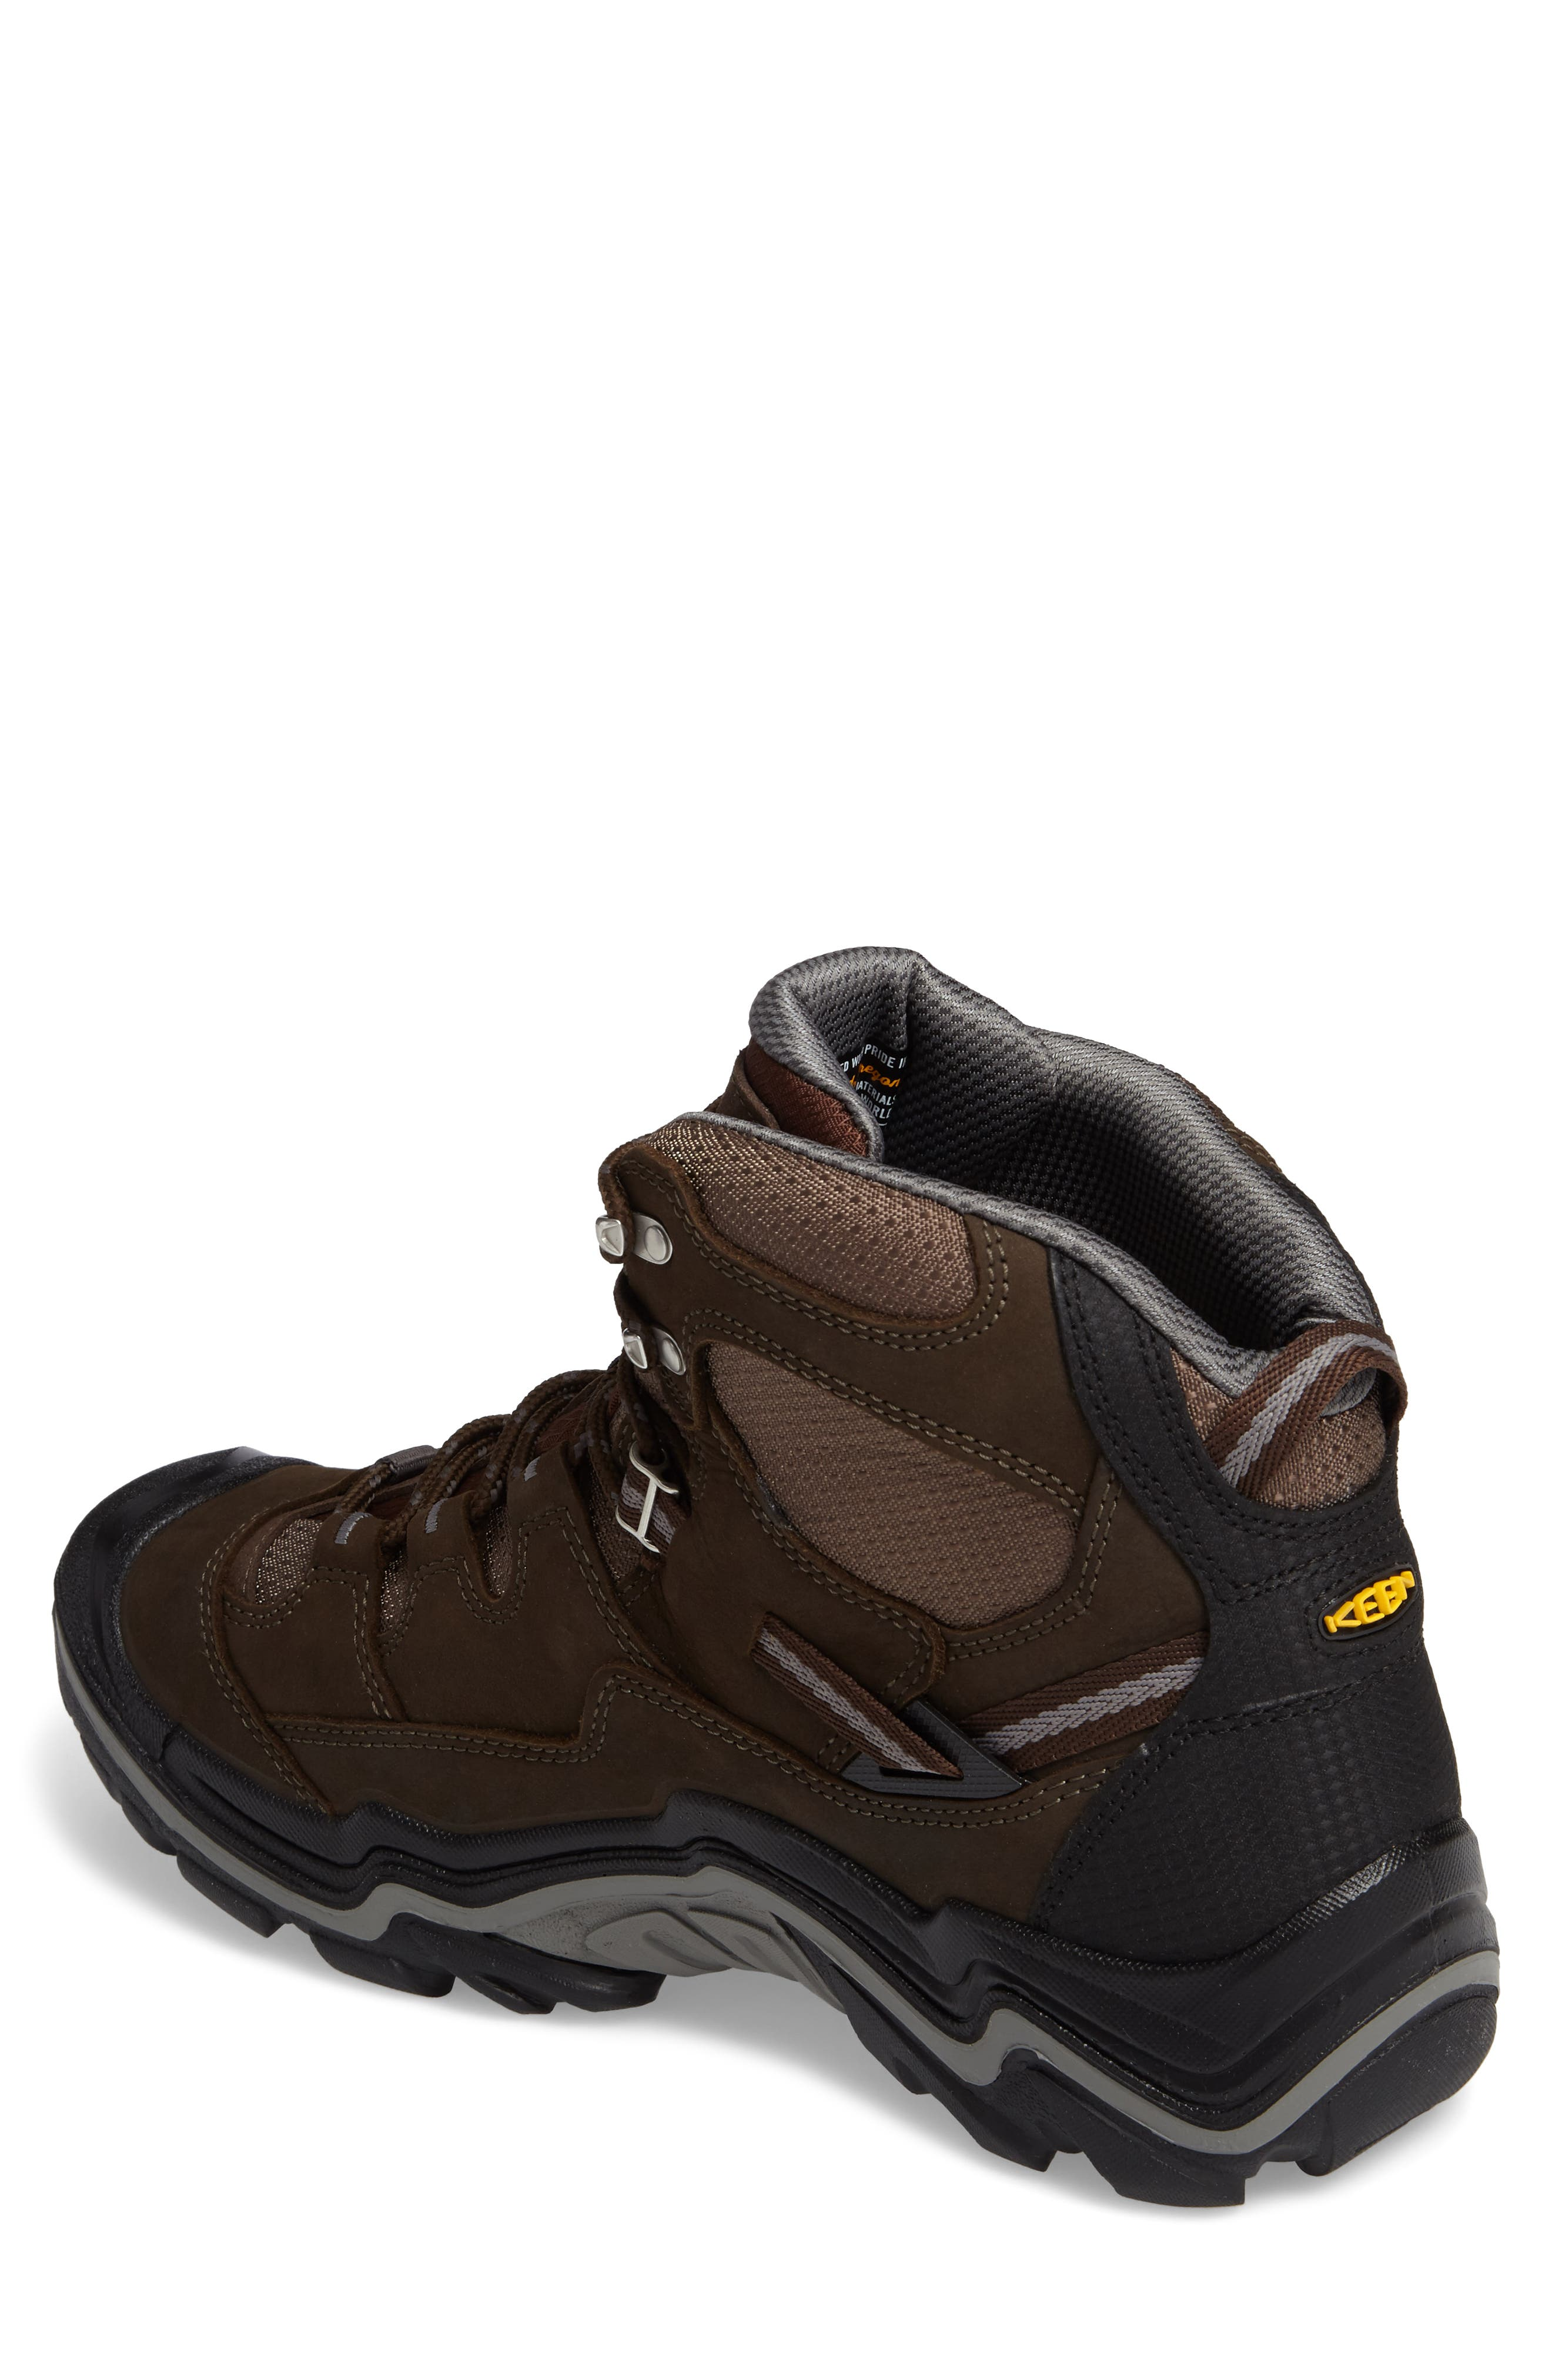 Durand Mid Waterproof Hiking Boot,                             Alternate thumbnail 2, color,                             211